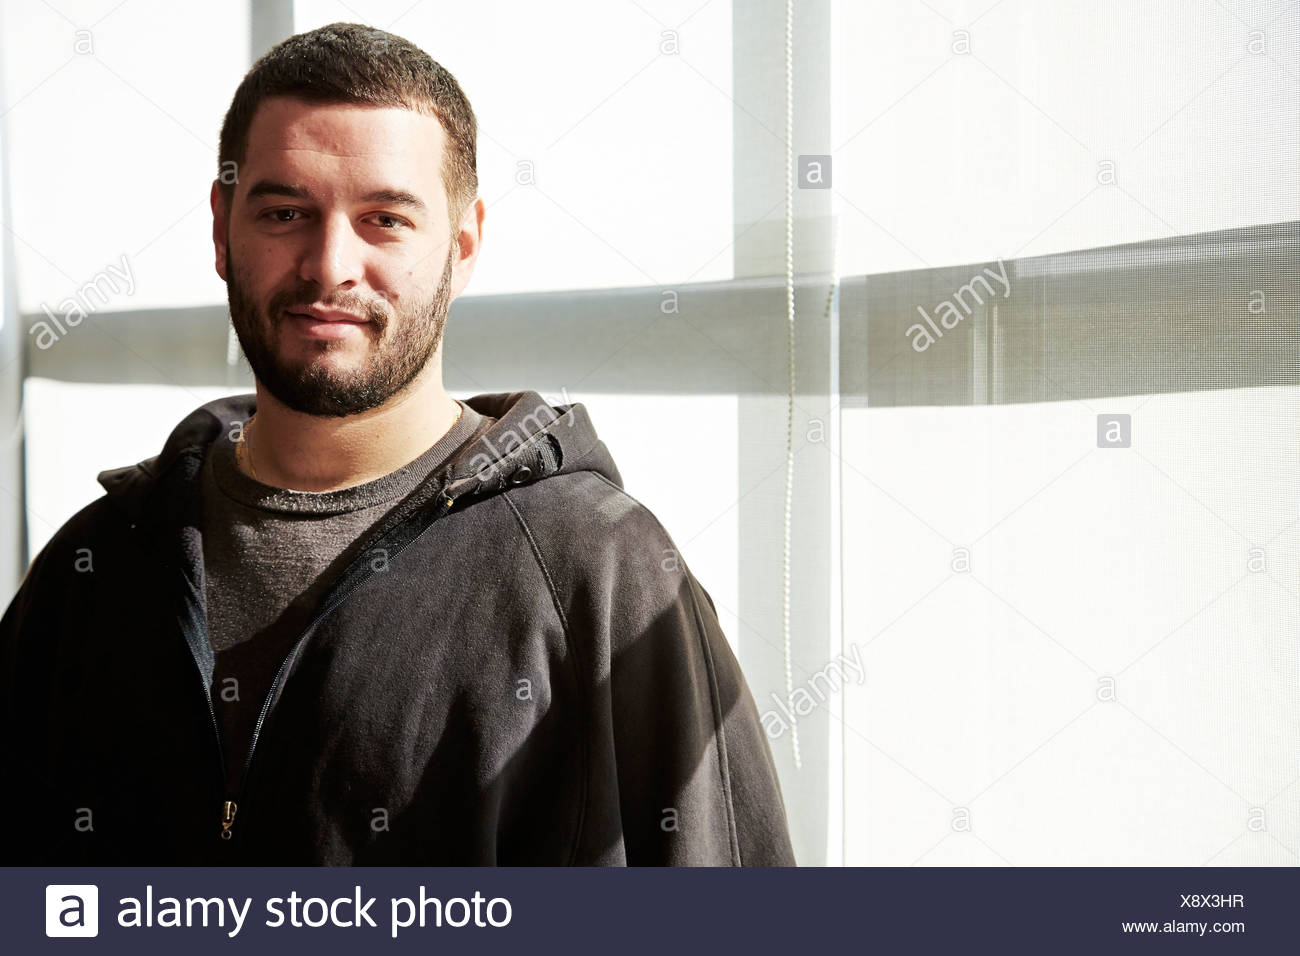 Portrait of young man wearing hooded top Stock Photo